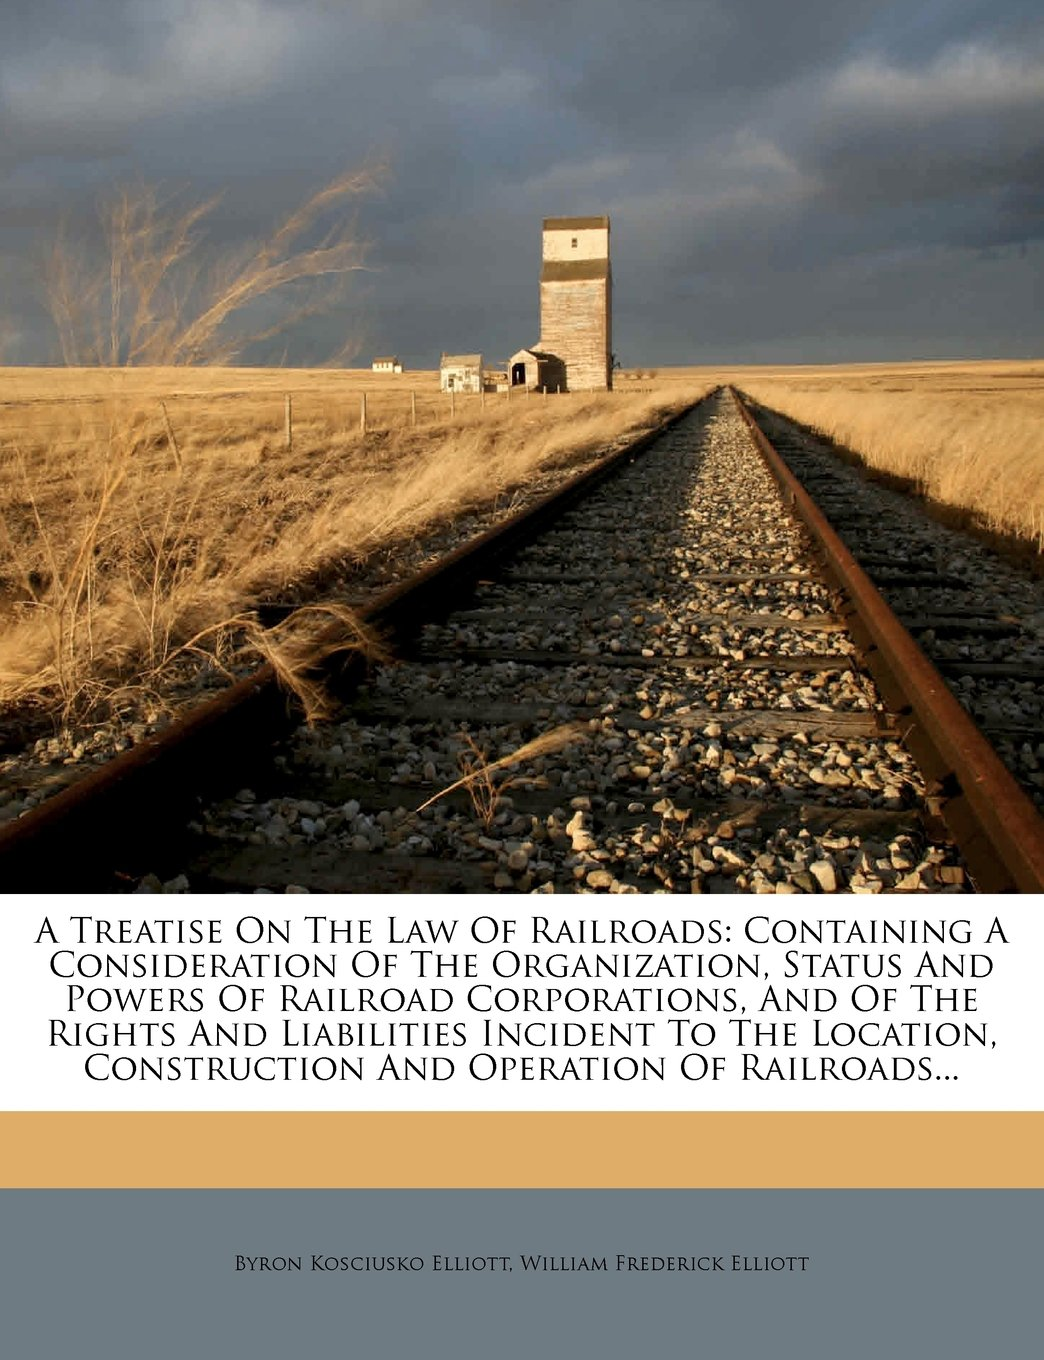 A Treatise On The Law Of Railroads: Containing A Consideration Of The Organization, Status And Powers Of Railroad Corporations, And Of The Rights And ... Construction And Operation Of Railroads... pdf